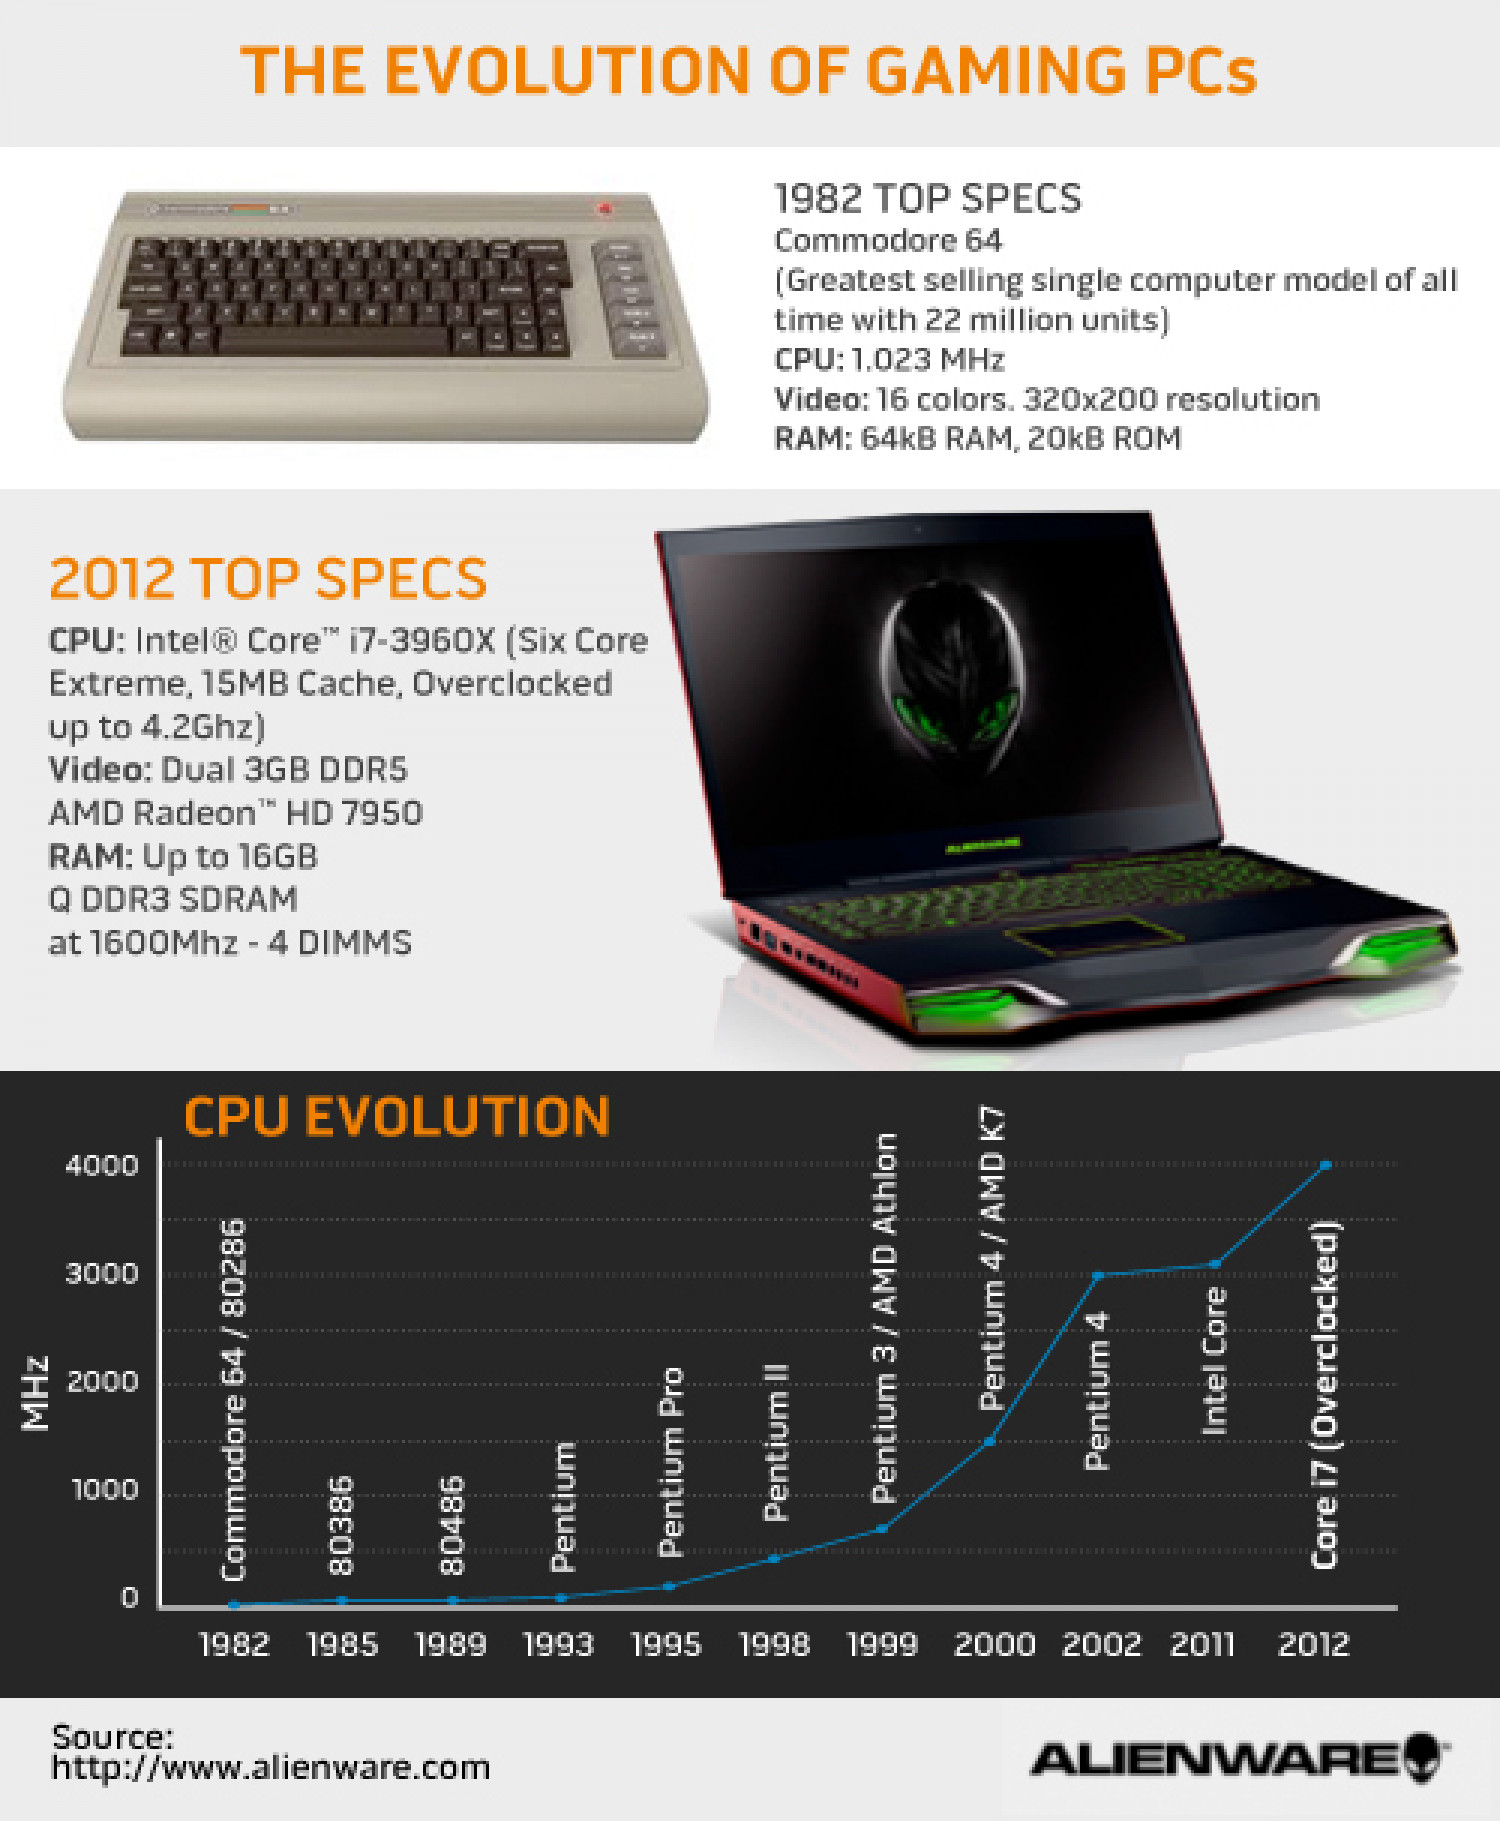 The Evolution of Gaming PCs Infographic